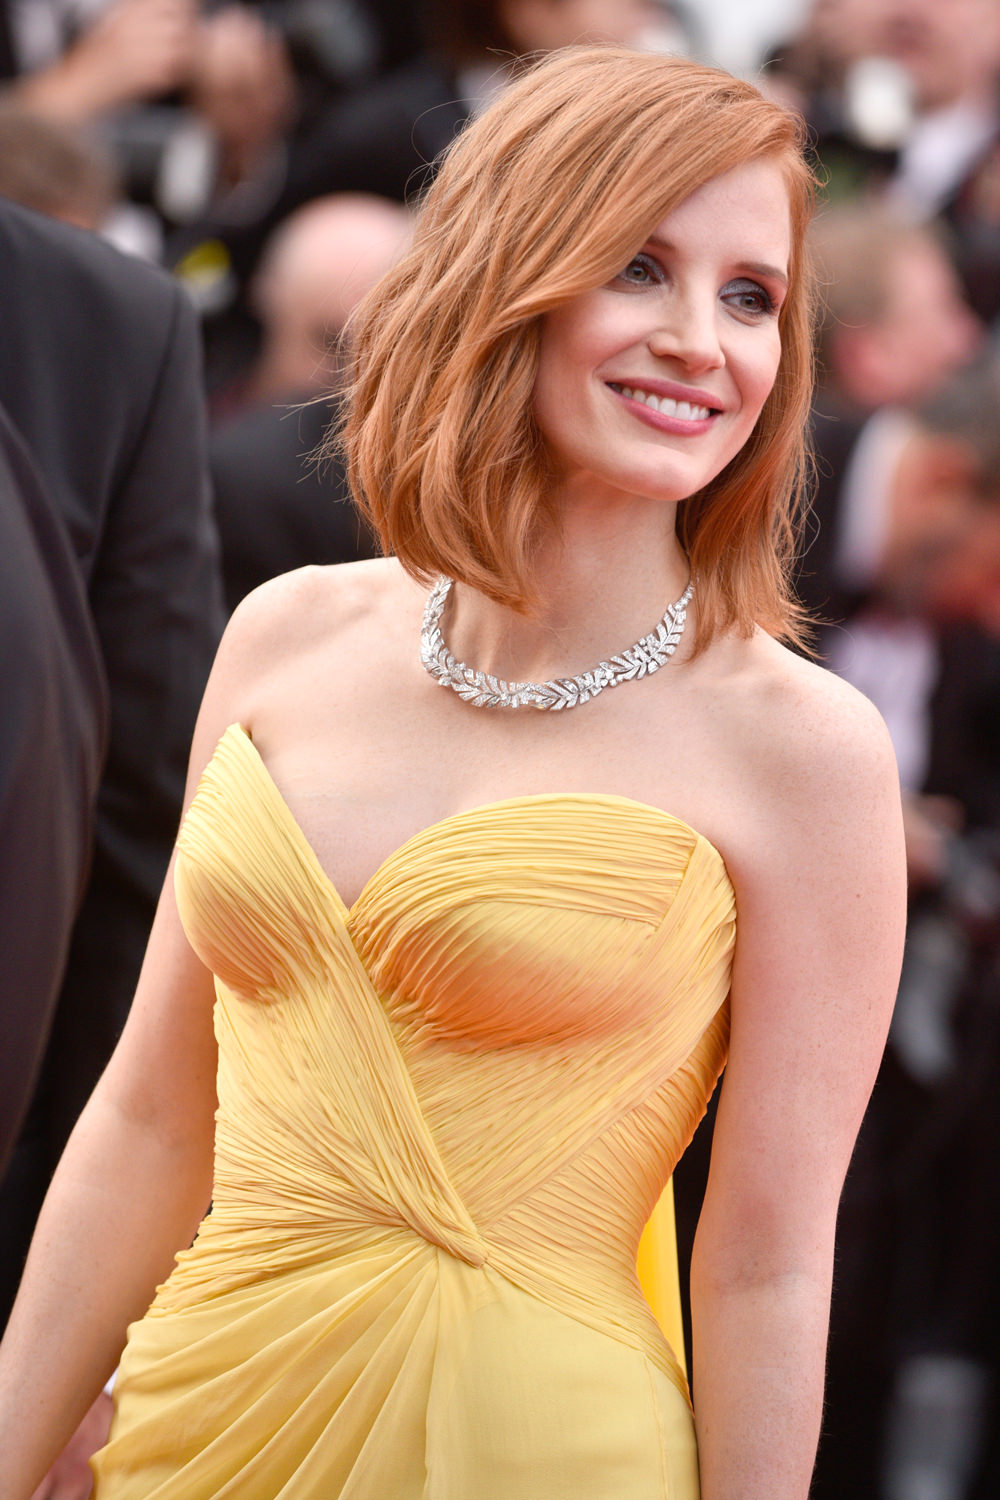 Jessica-Chastain-Cannes-Film-Festival-2016-Red-Carpet-Fashion-Armani-Prive-Tom-Lorenzo-Site (1)